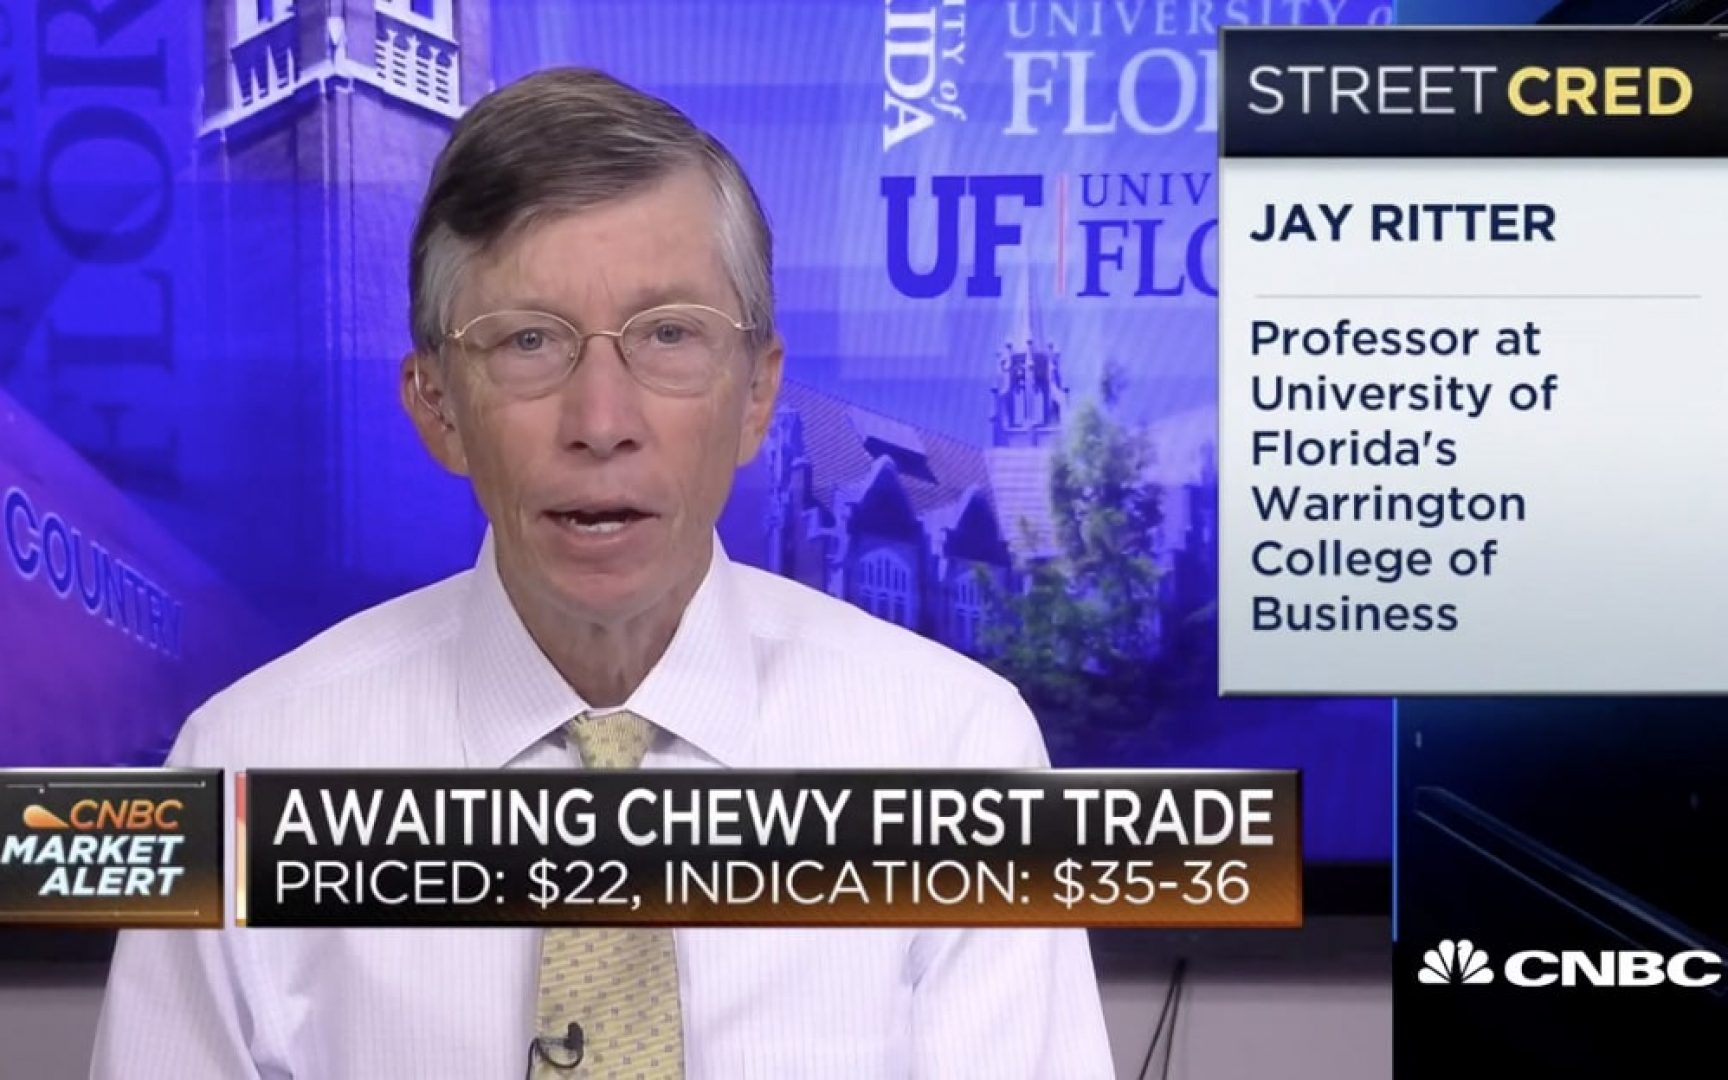 Jay Ritter on CNBC talking about the Chewy.com IPO